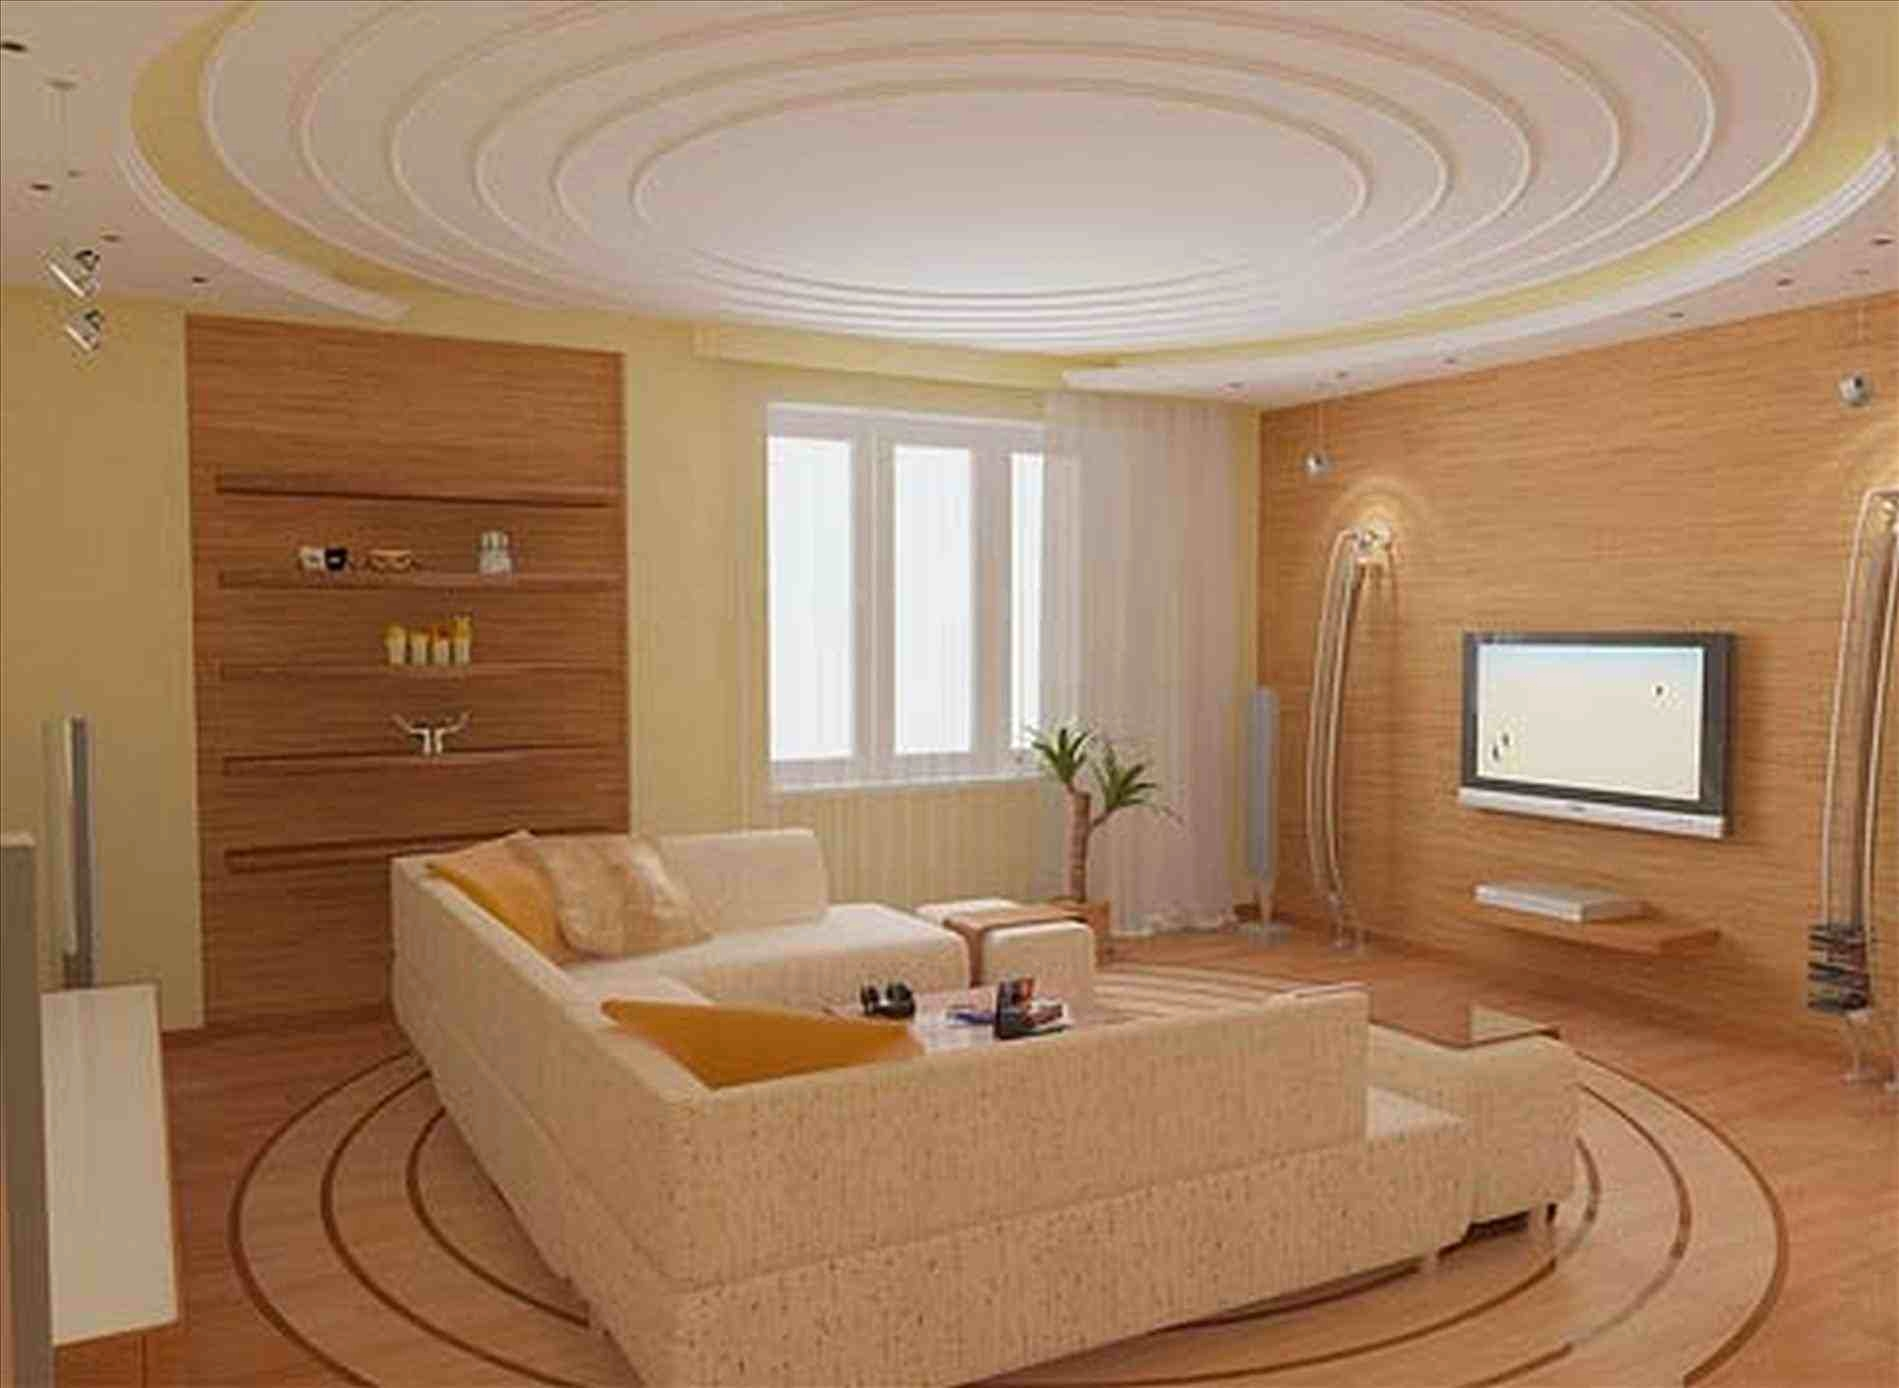 Simple Pop Design For Bathroom Fresh Bedroom Ceiling Decorations Opnodes